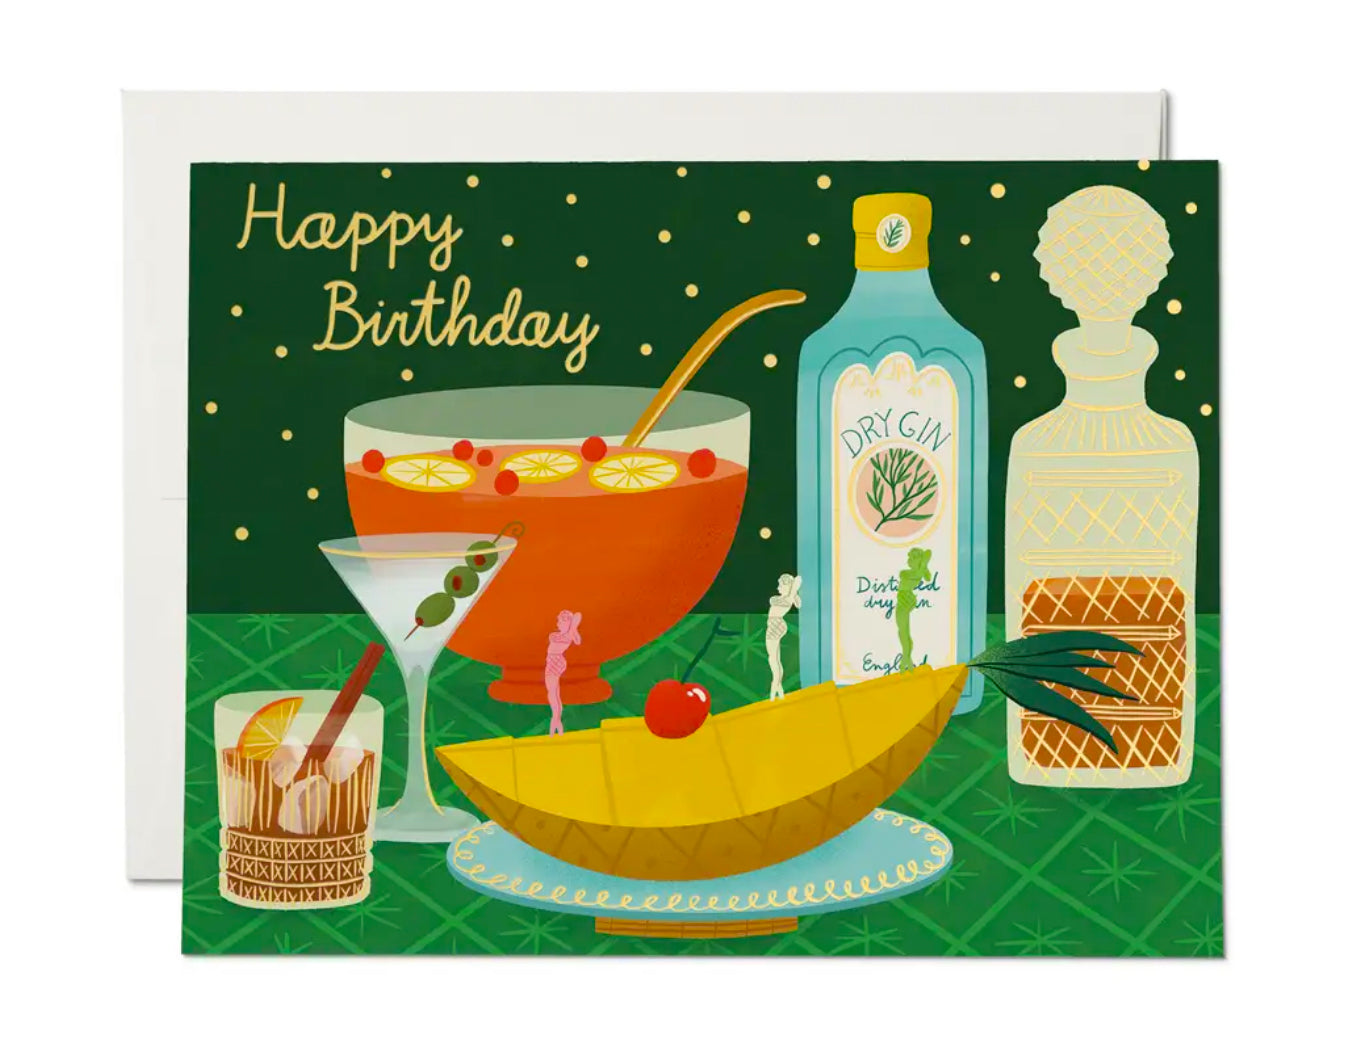 vintage inspired illustration of classic cocktails and a punchbowl. Says happy birthday in gold lettering.